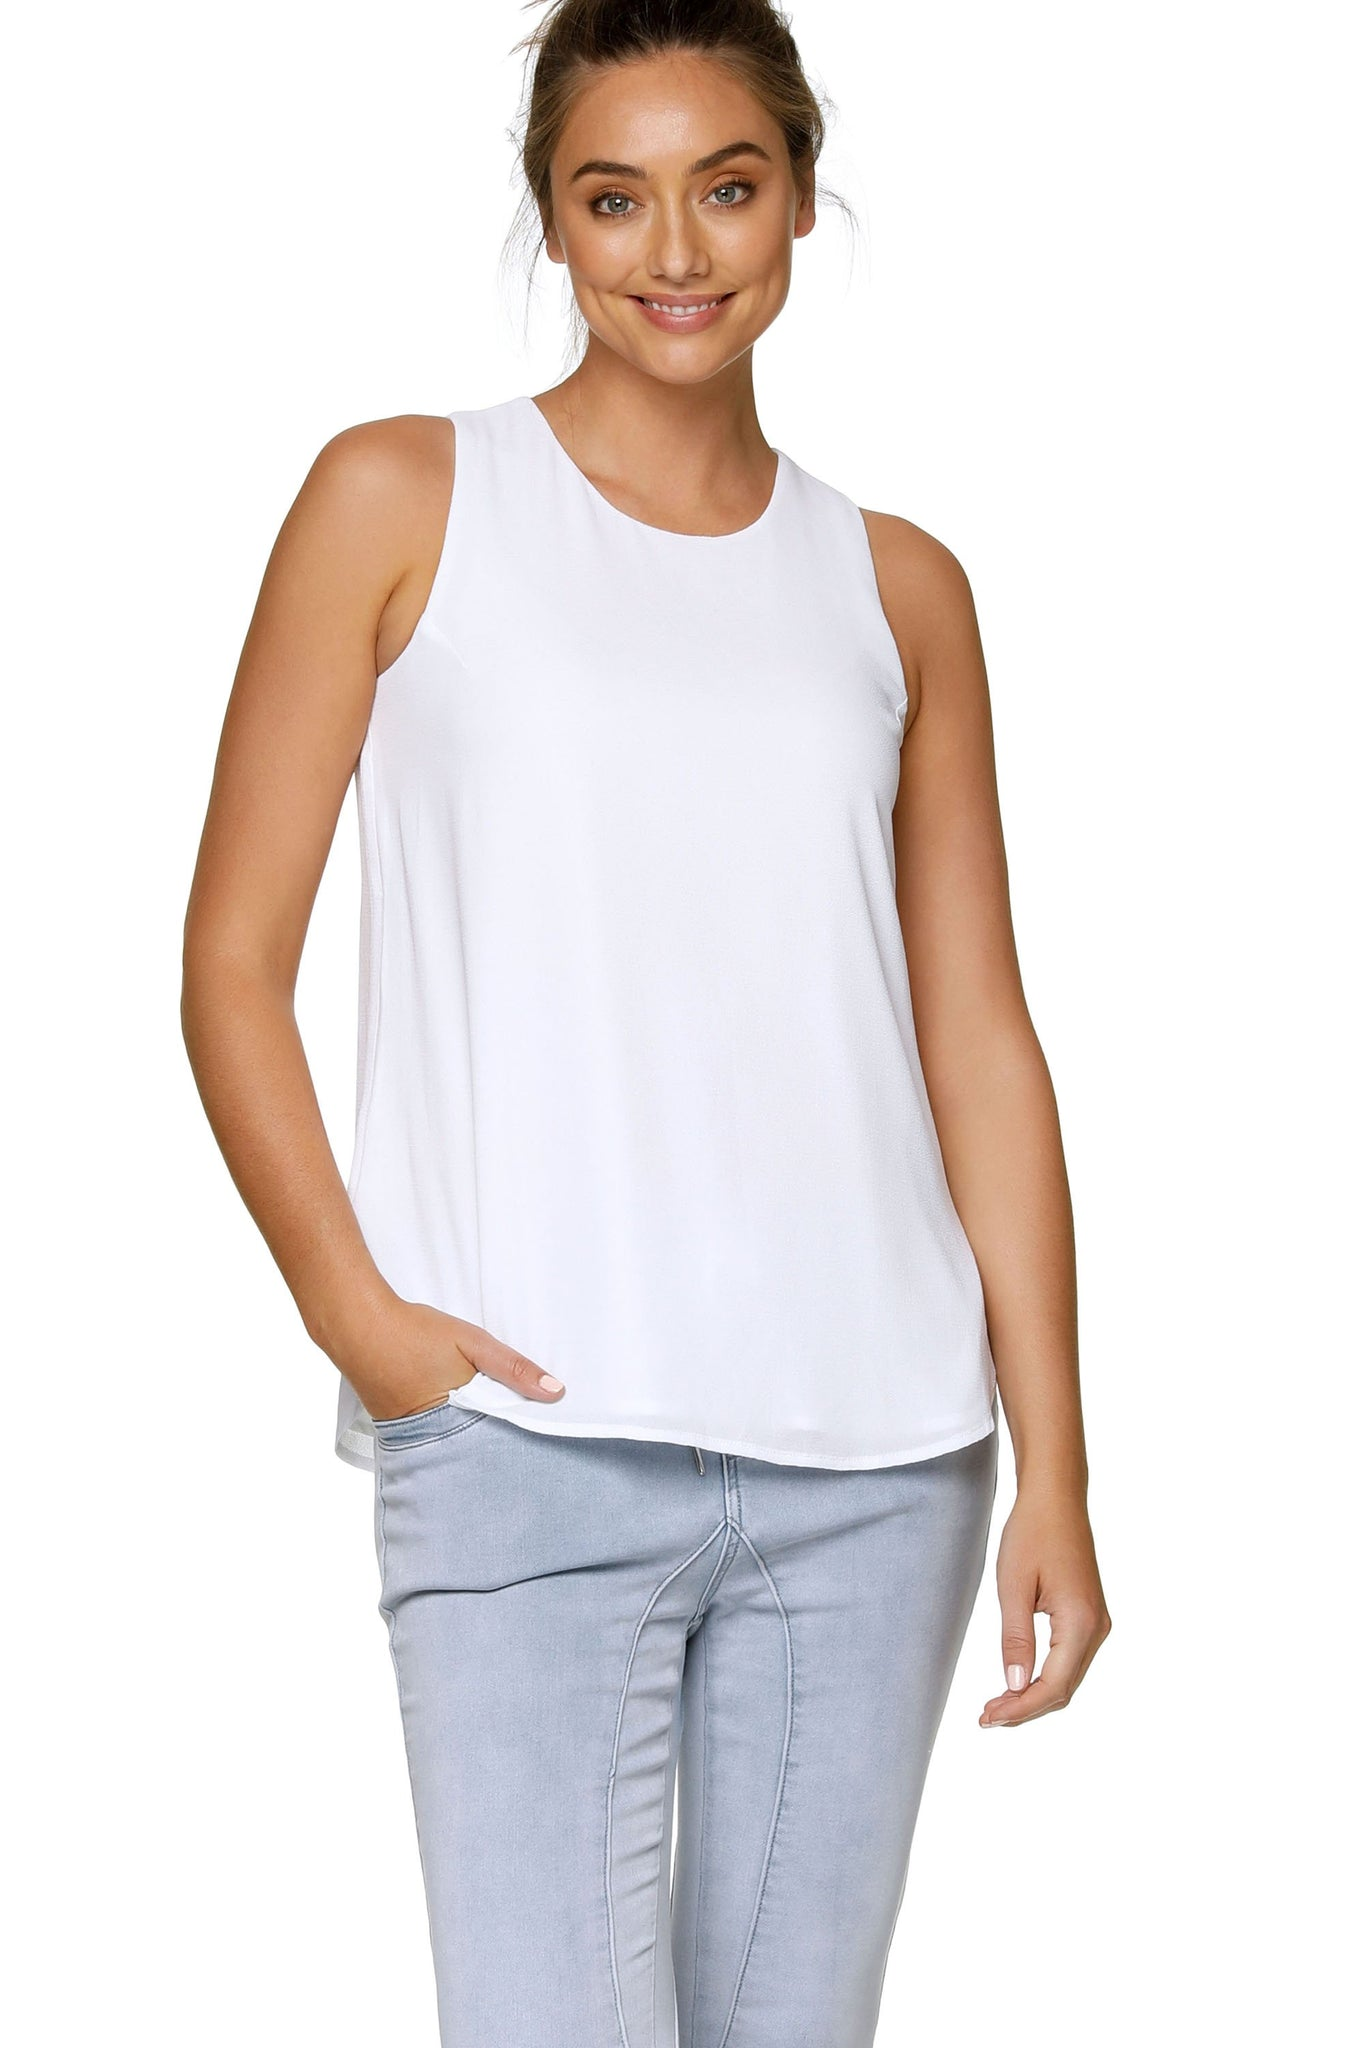 Maternity & Nursing Tank Top - White 6